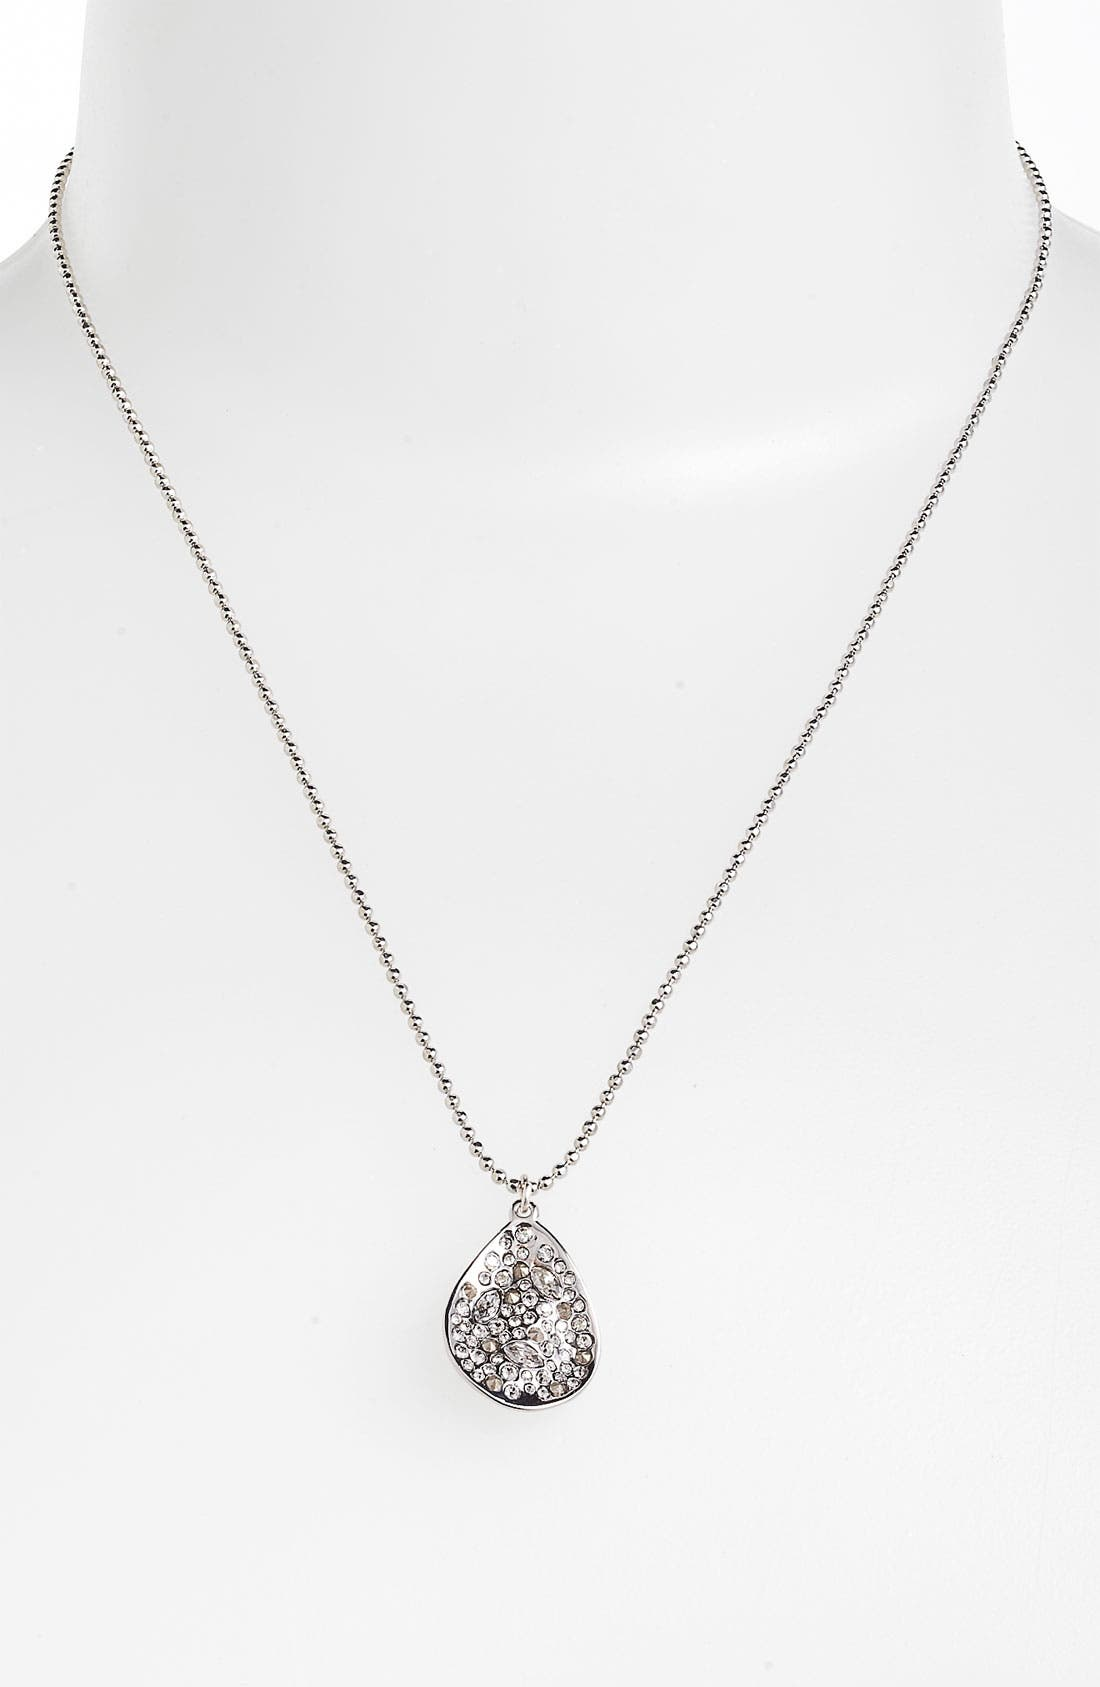 Main Image - Alexis Bittar 'Miss Havisham' Small Teardrop Pendant Necklace